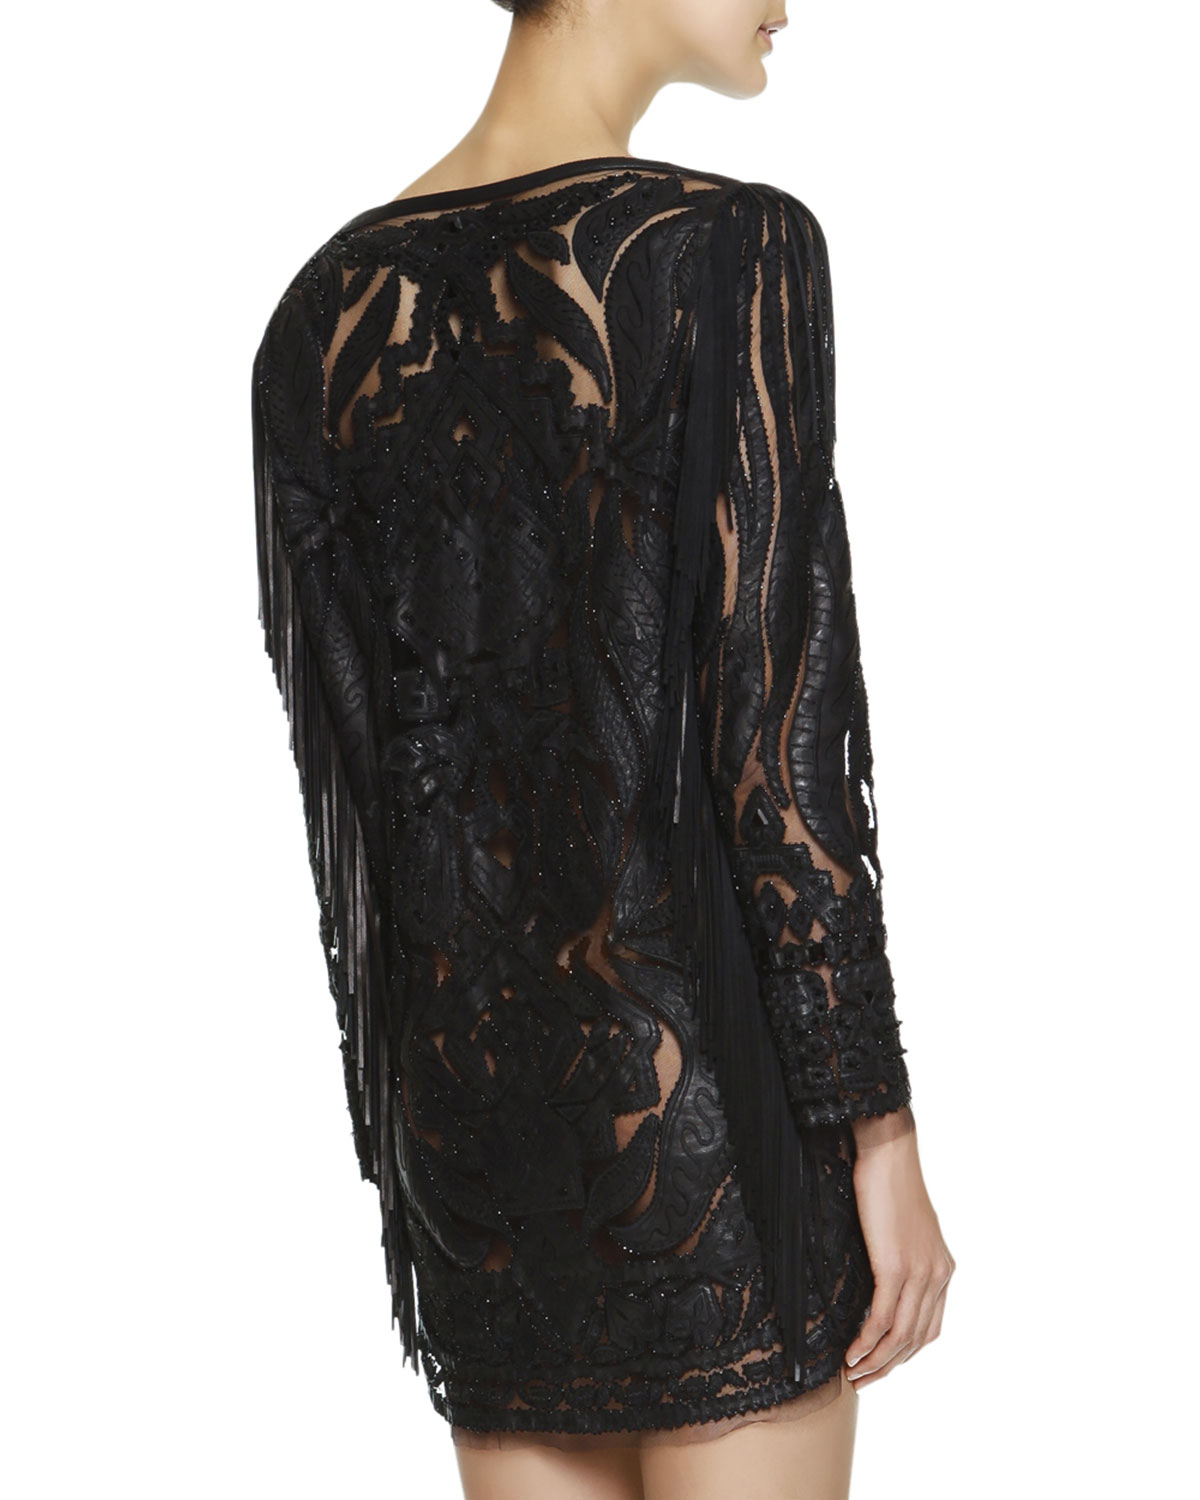 Pucci Black Lace Evening Gown